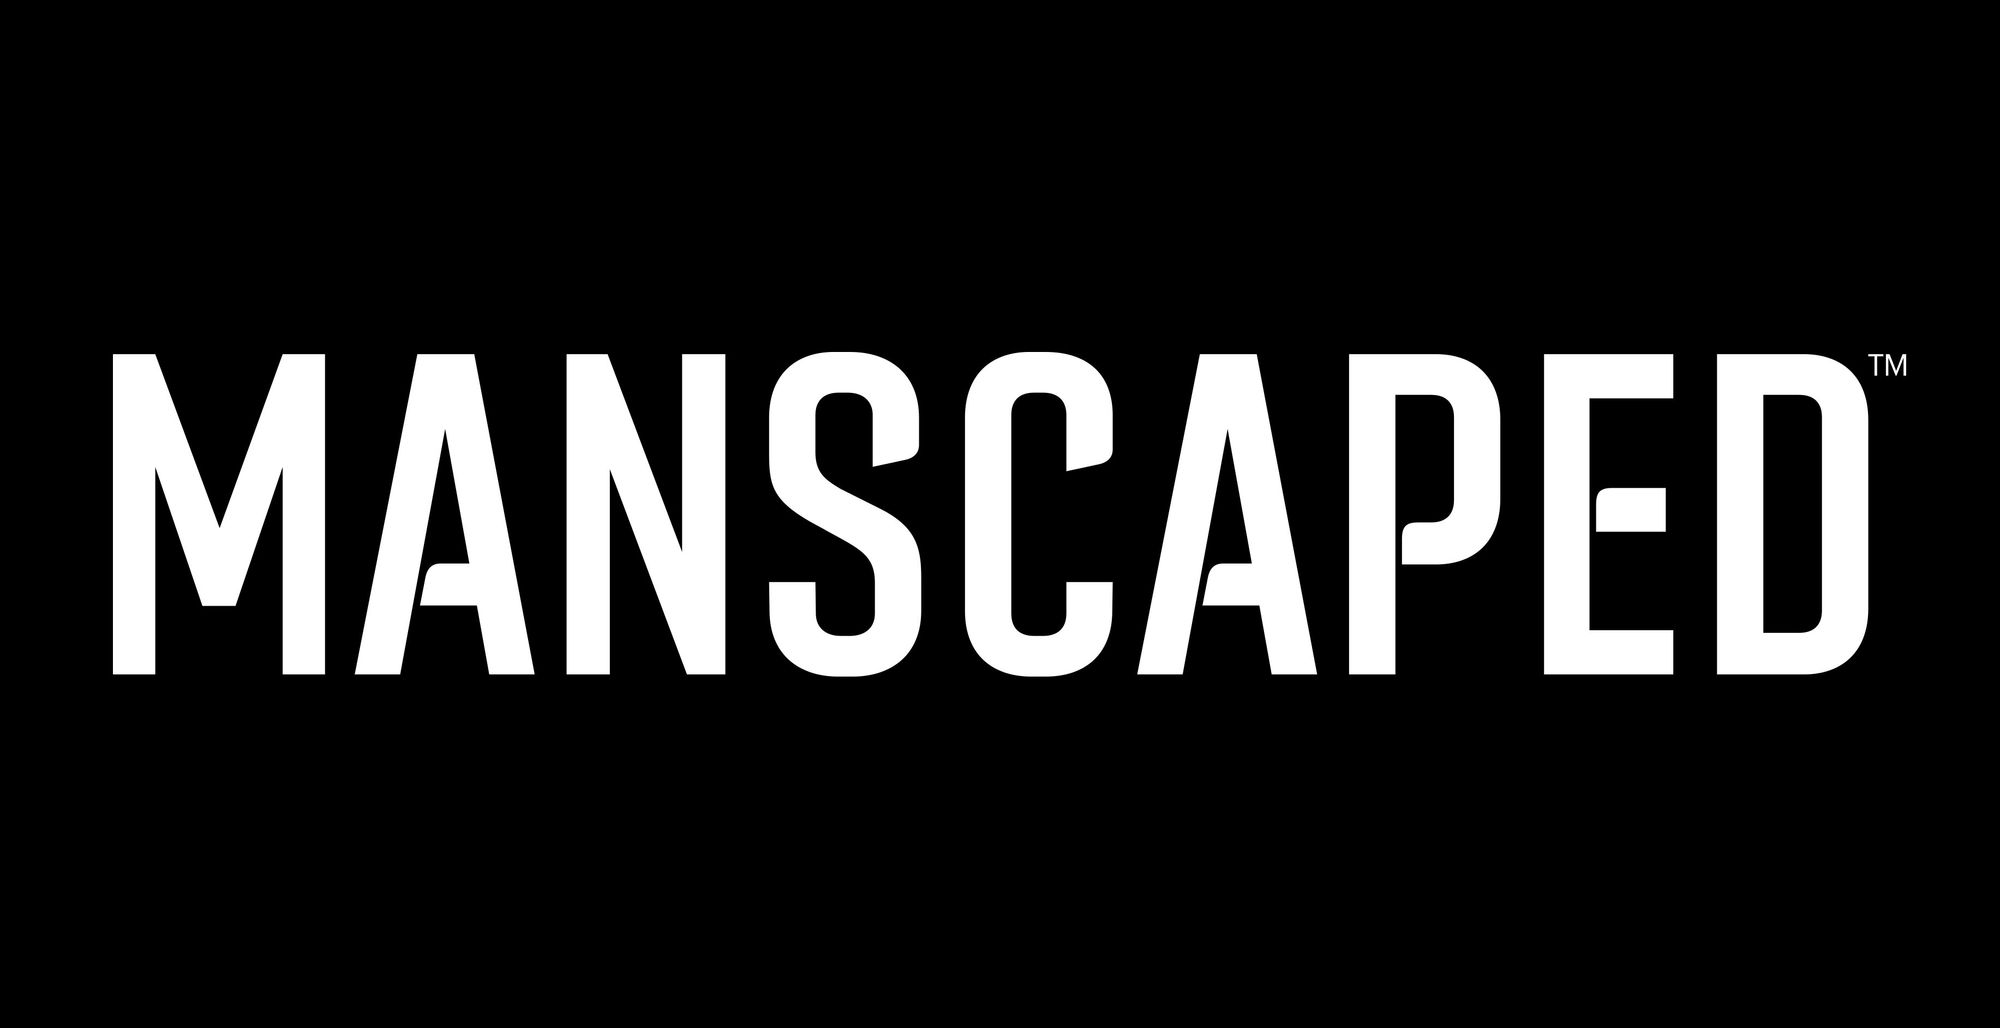 Where Do The Manscaped™ Crop Cleanser® Ship To?